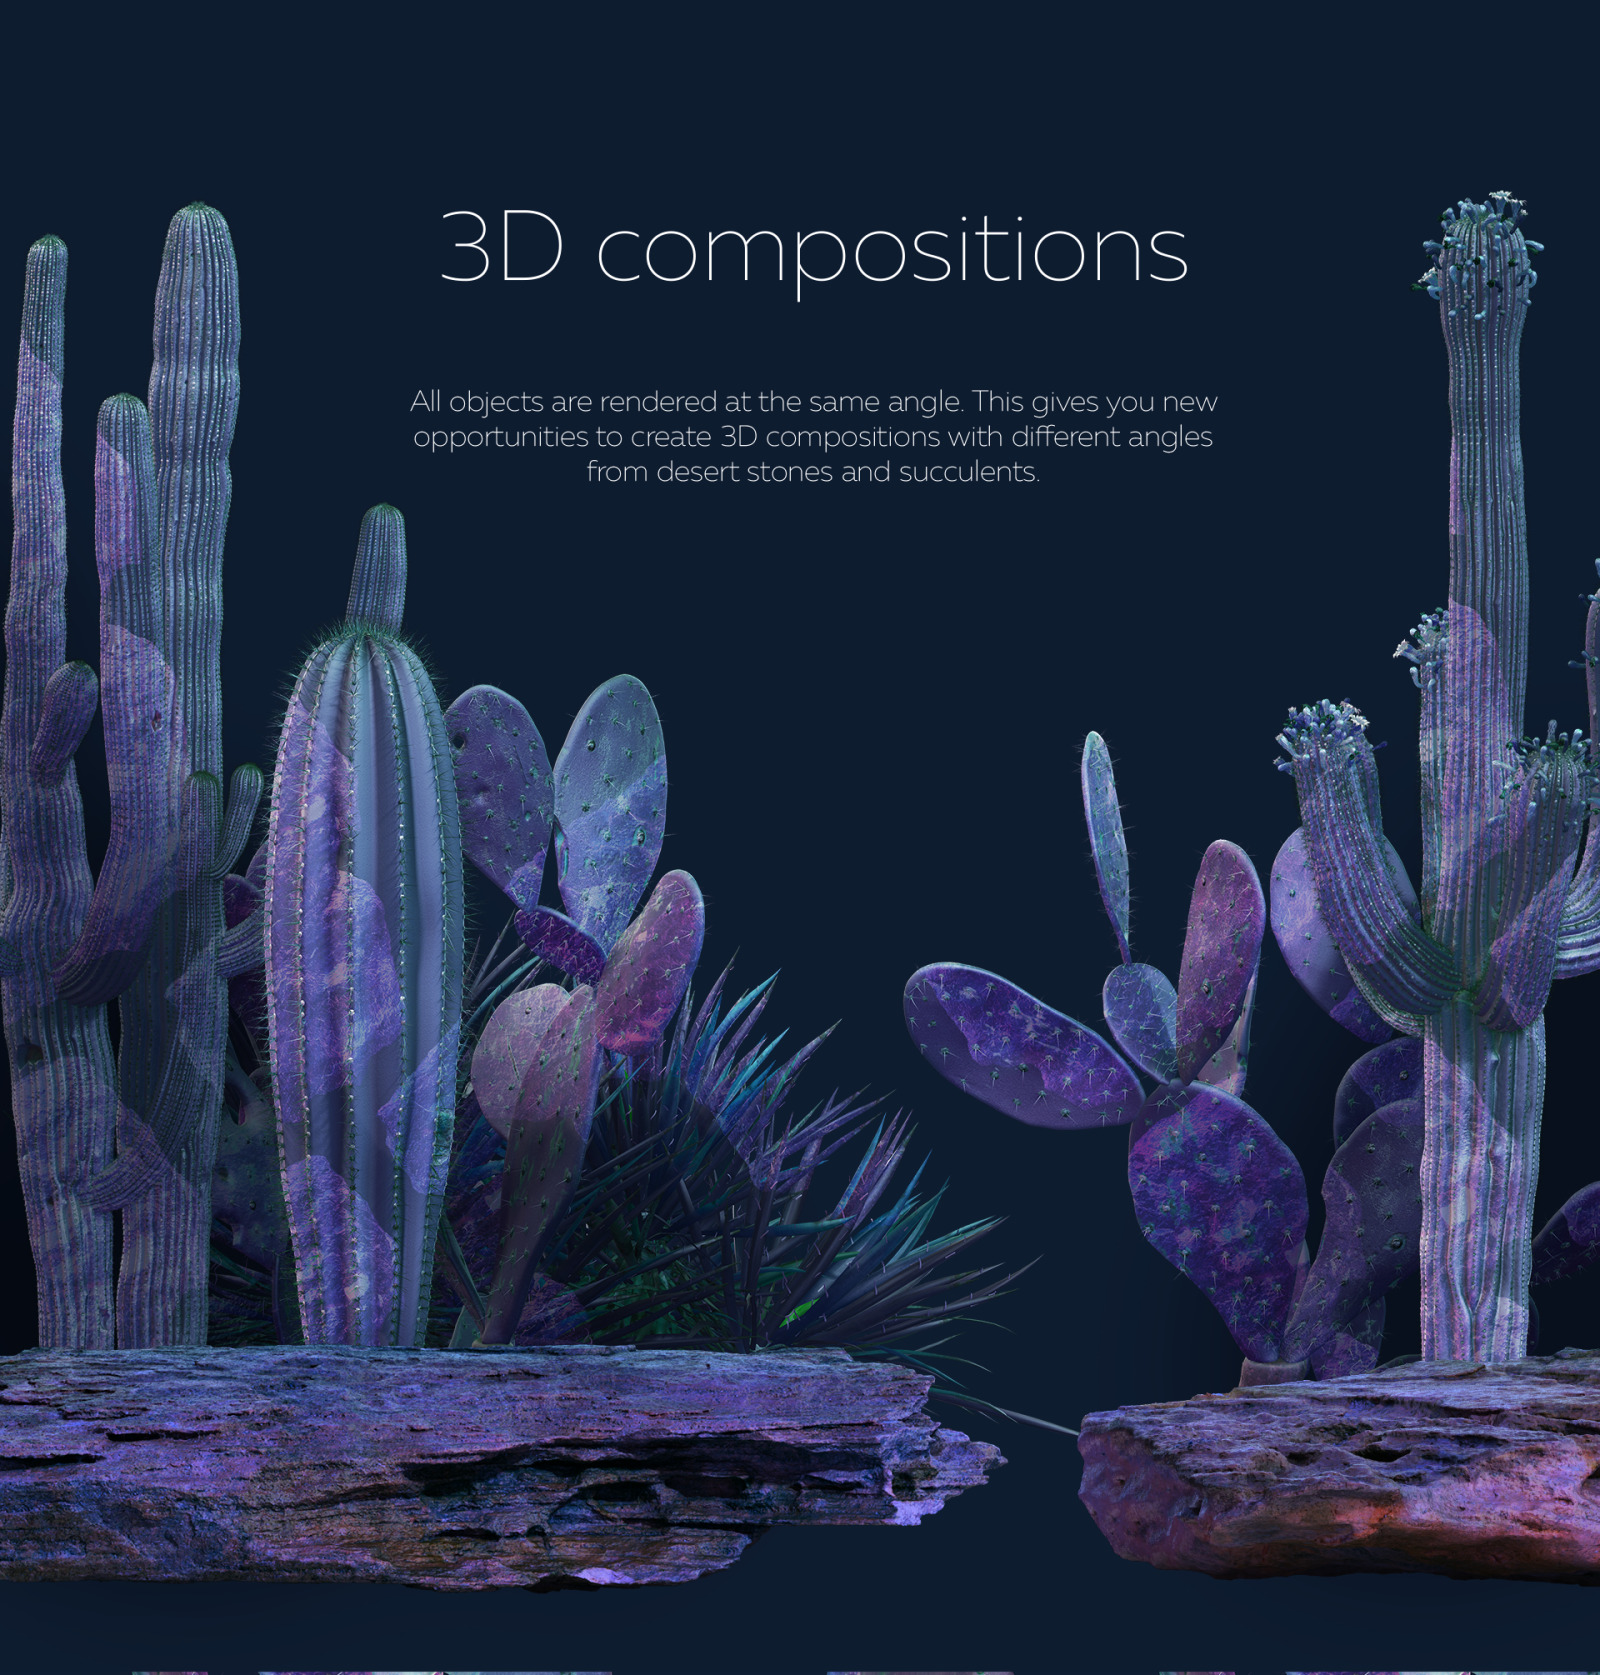 Cosmic cacti #01, 500 cactus and 120 rock mockups + 60 patterns